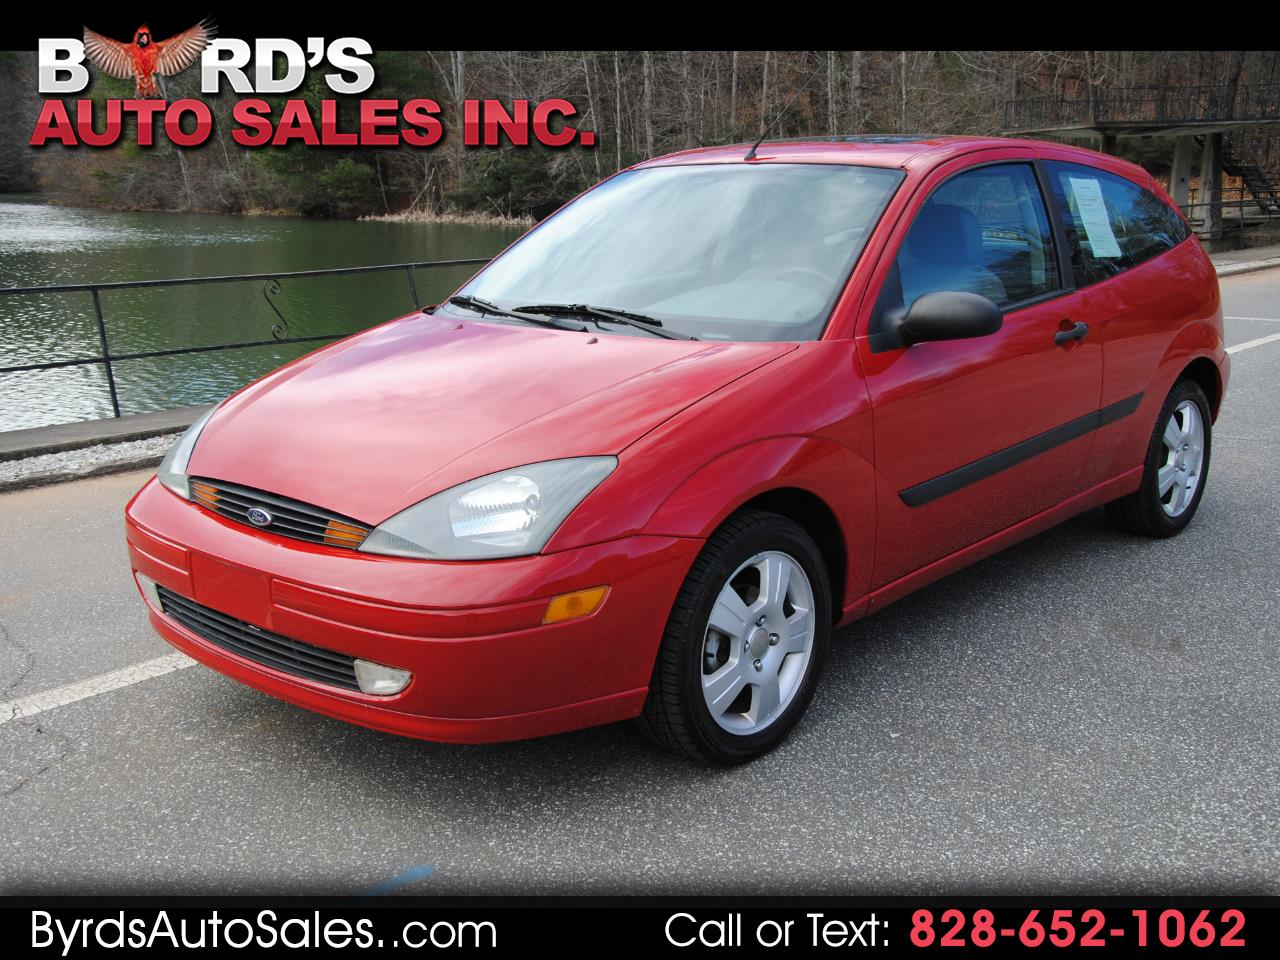 2004 Ford Focus 3dr Cpe ZX3 Base